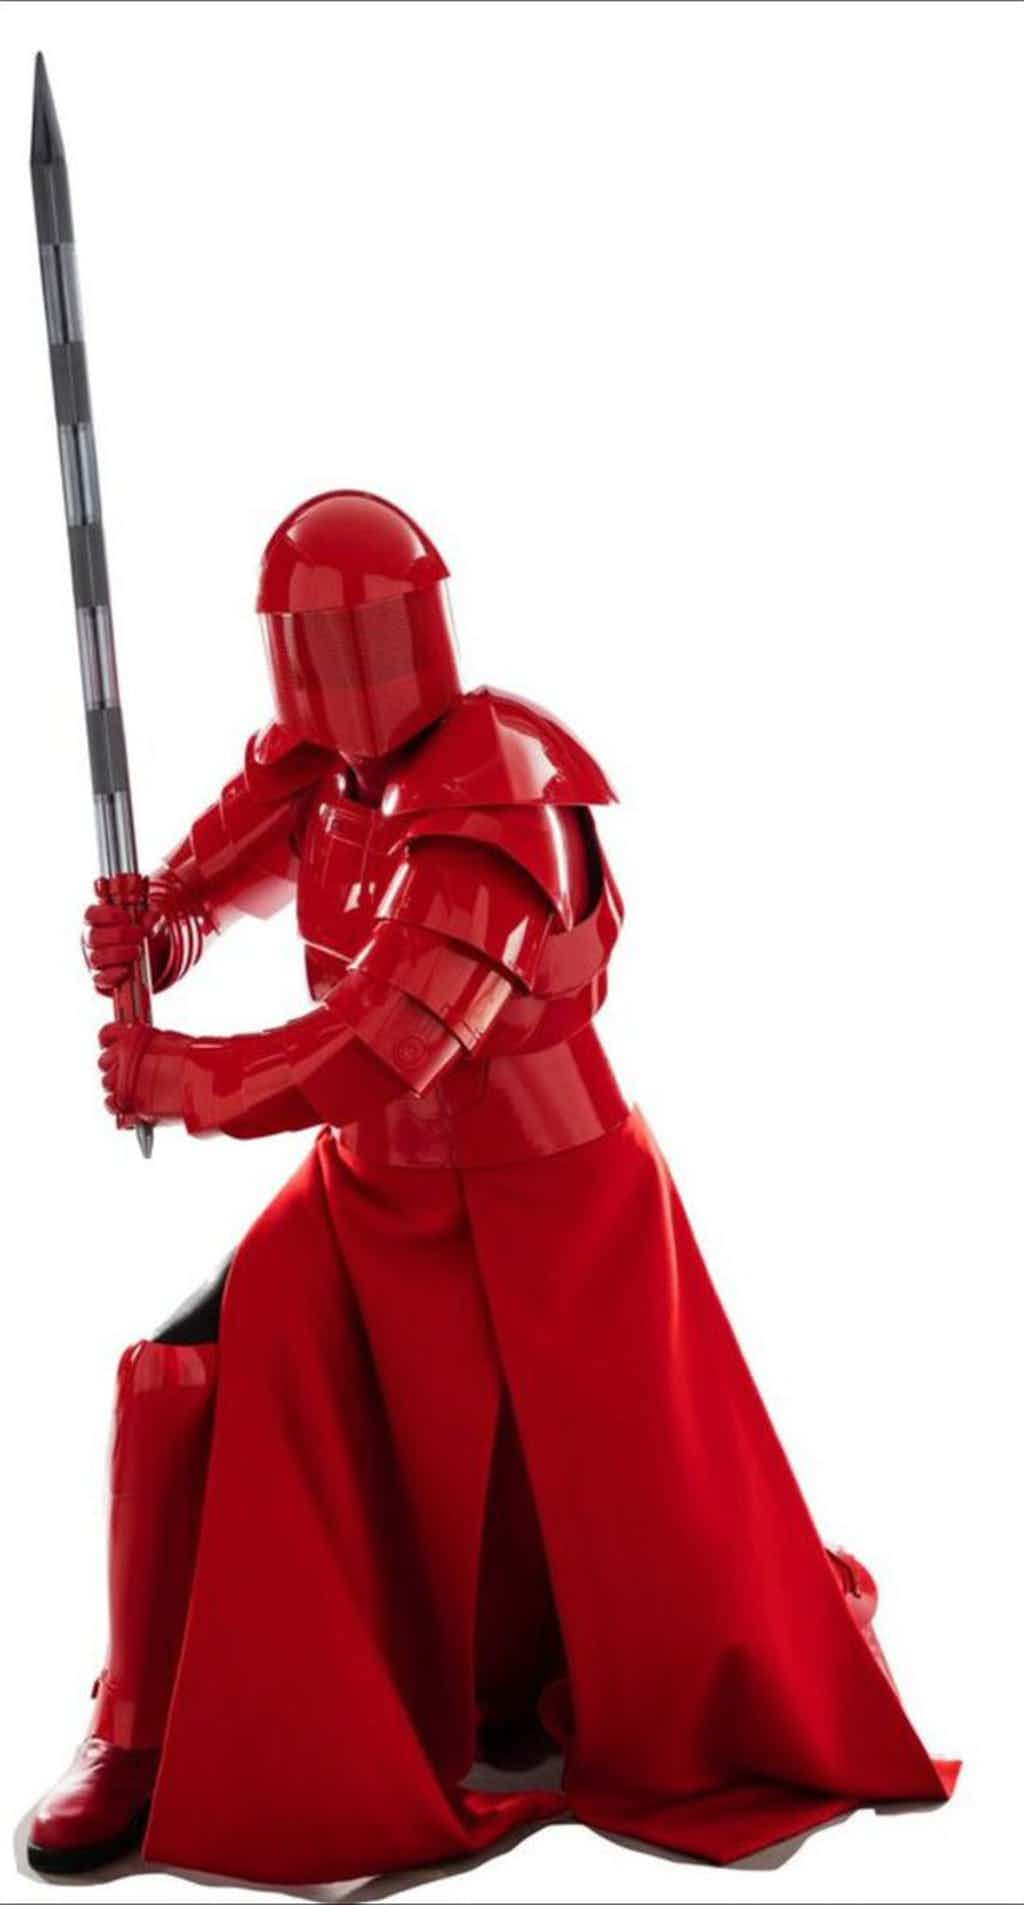 Star-Wars-The-Last-Jedi-Snokes-Royal-Praetorian-Red-Guard-With-Sword.jpg